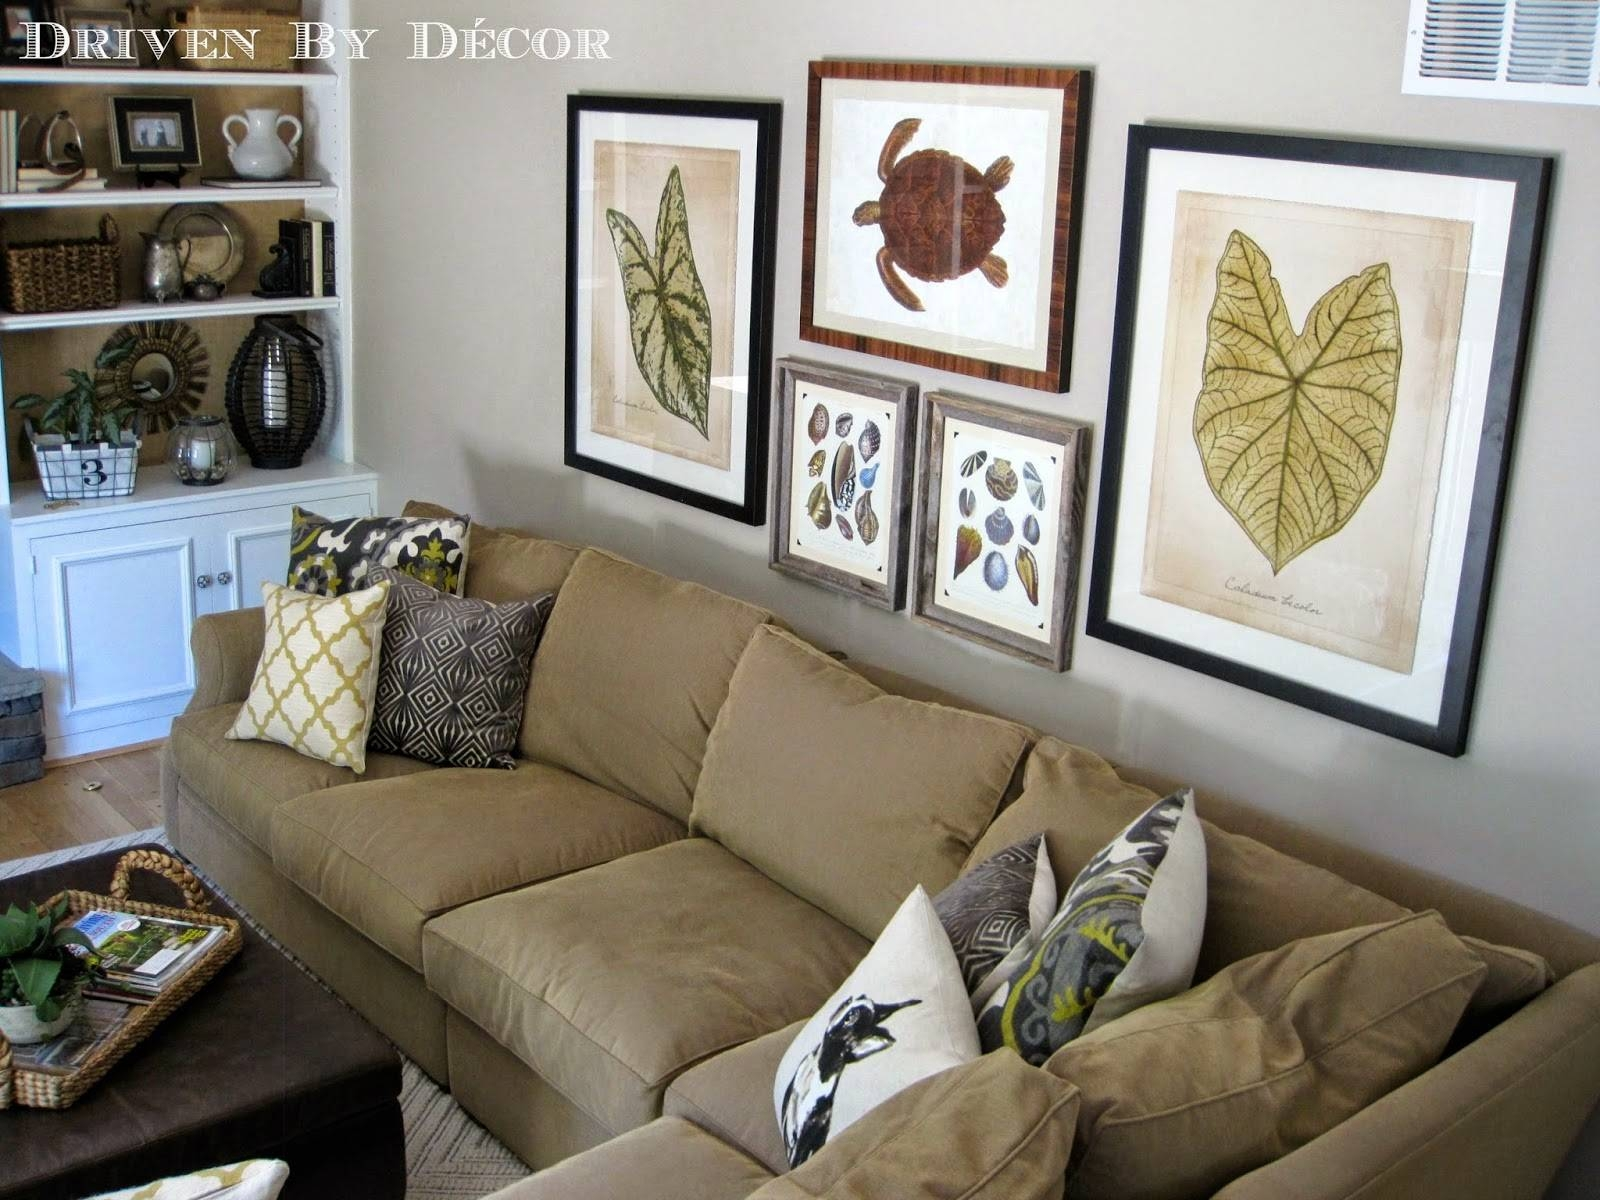 House Tour: Family Room | Drivendecor Throughout Most Up To Date Wall Art Decor For Family Room (View 9 of 20)